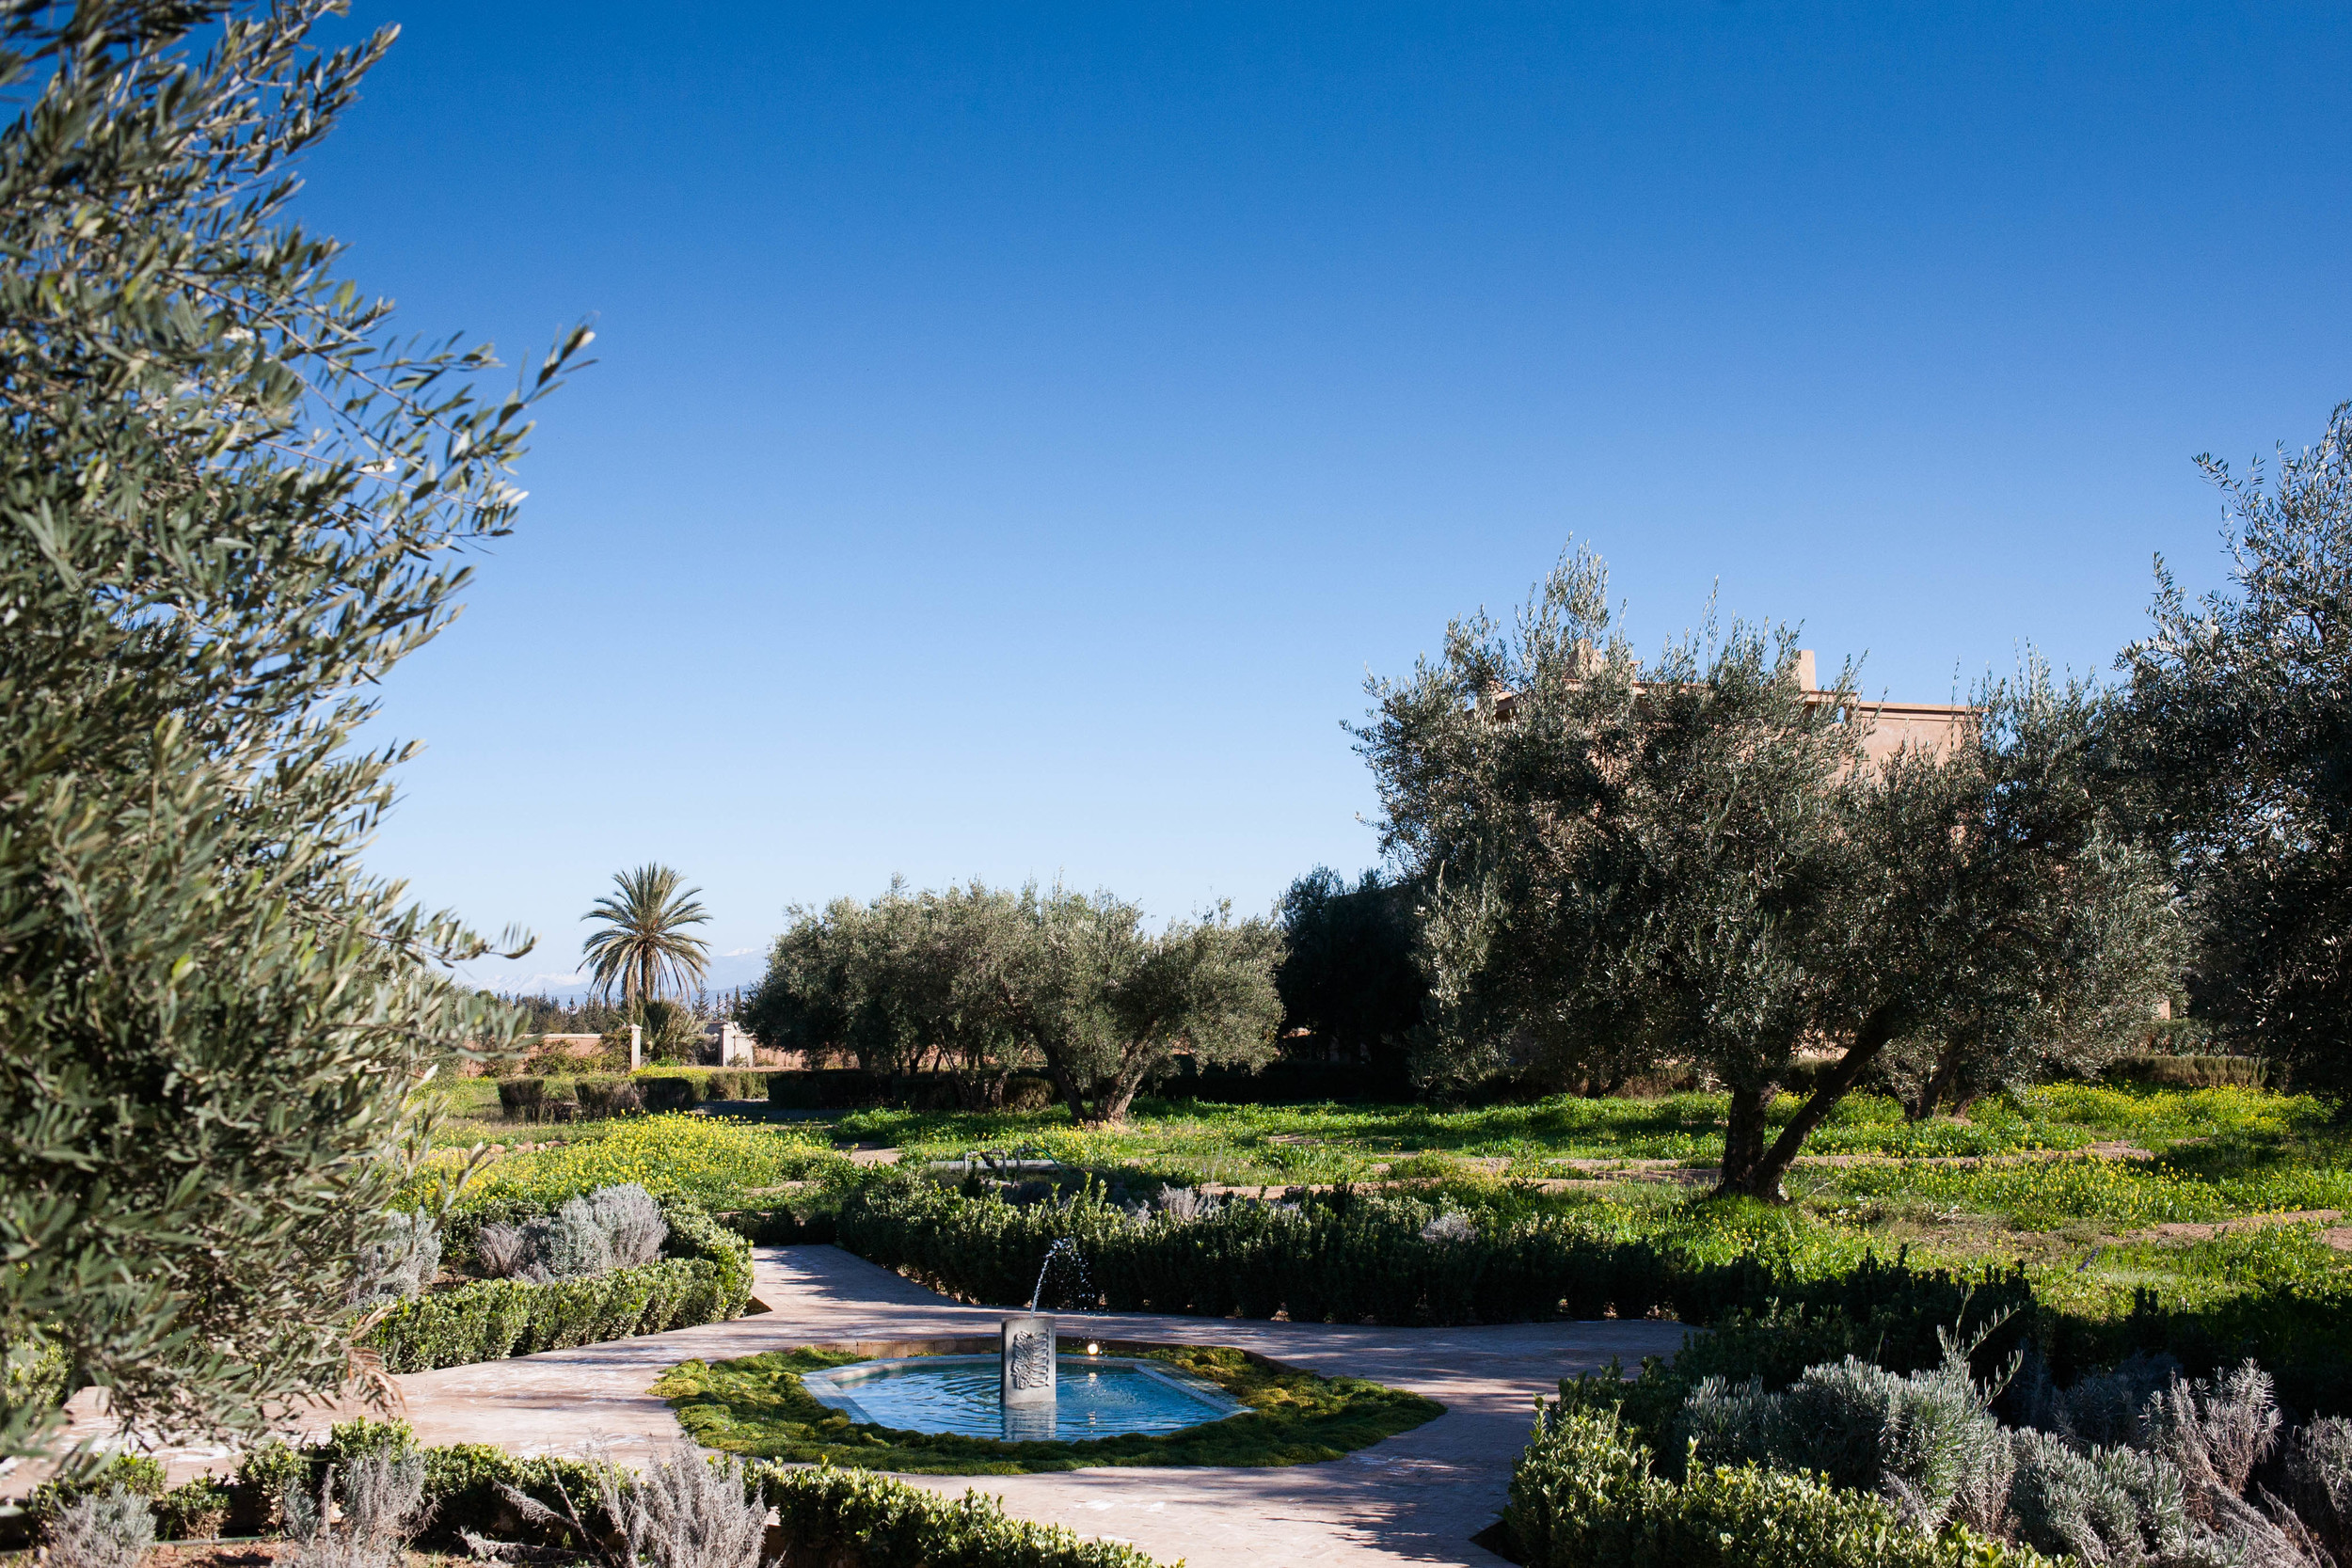 Peacock Pavilions boutique hotel in Marrakech, Morocco – Design by M. Montague - Meditation Fountain